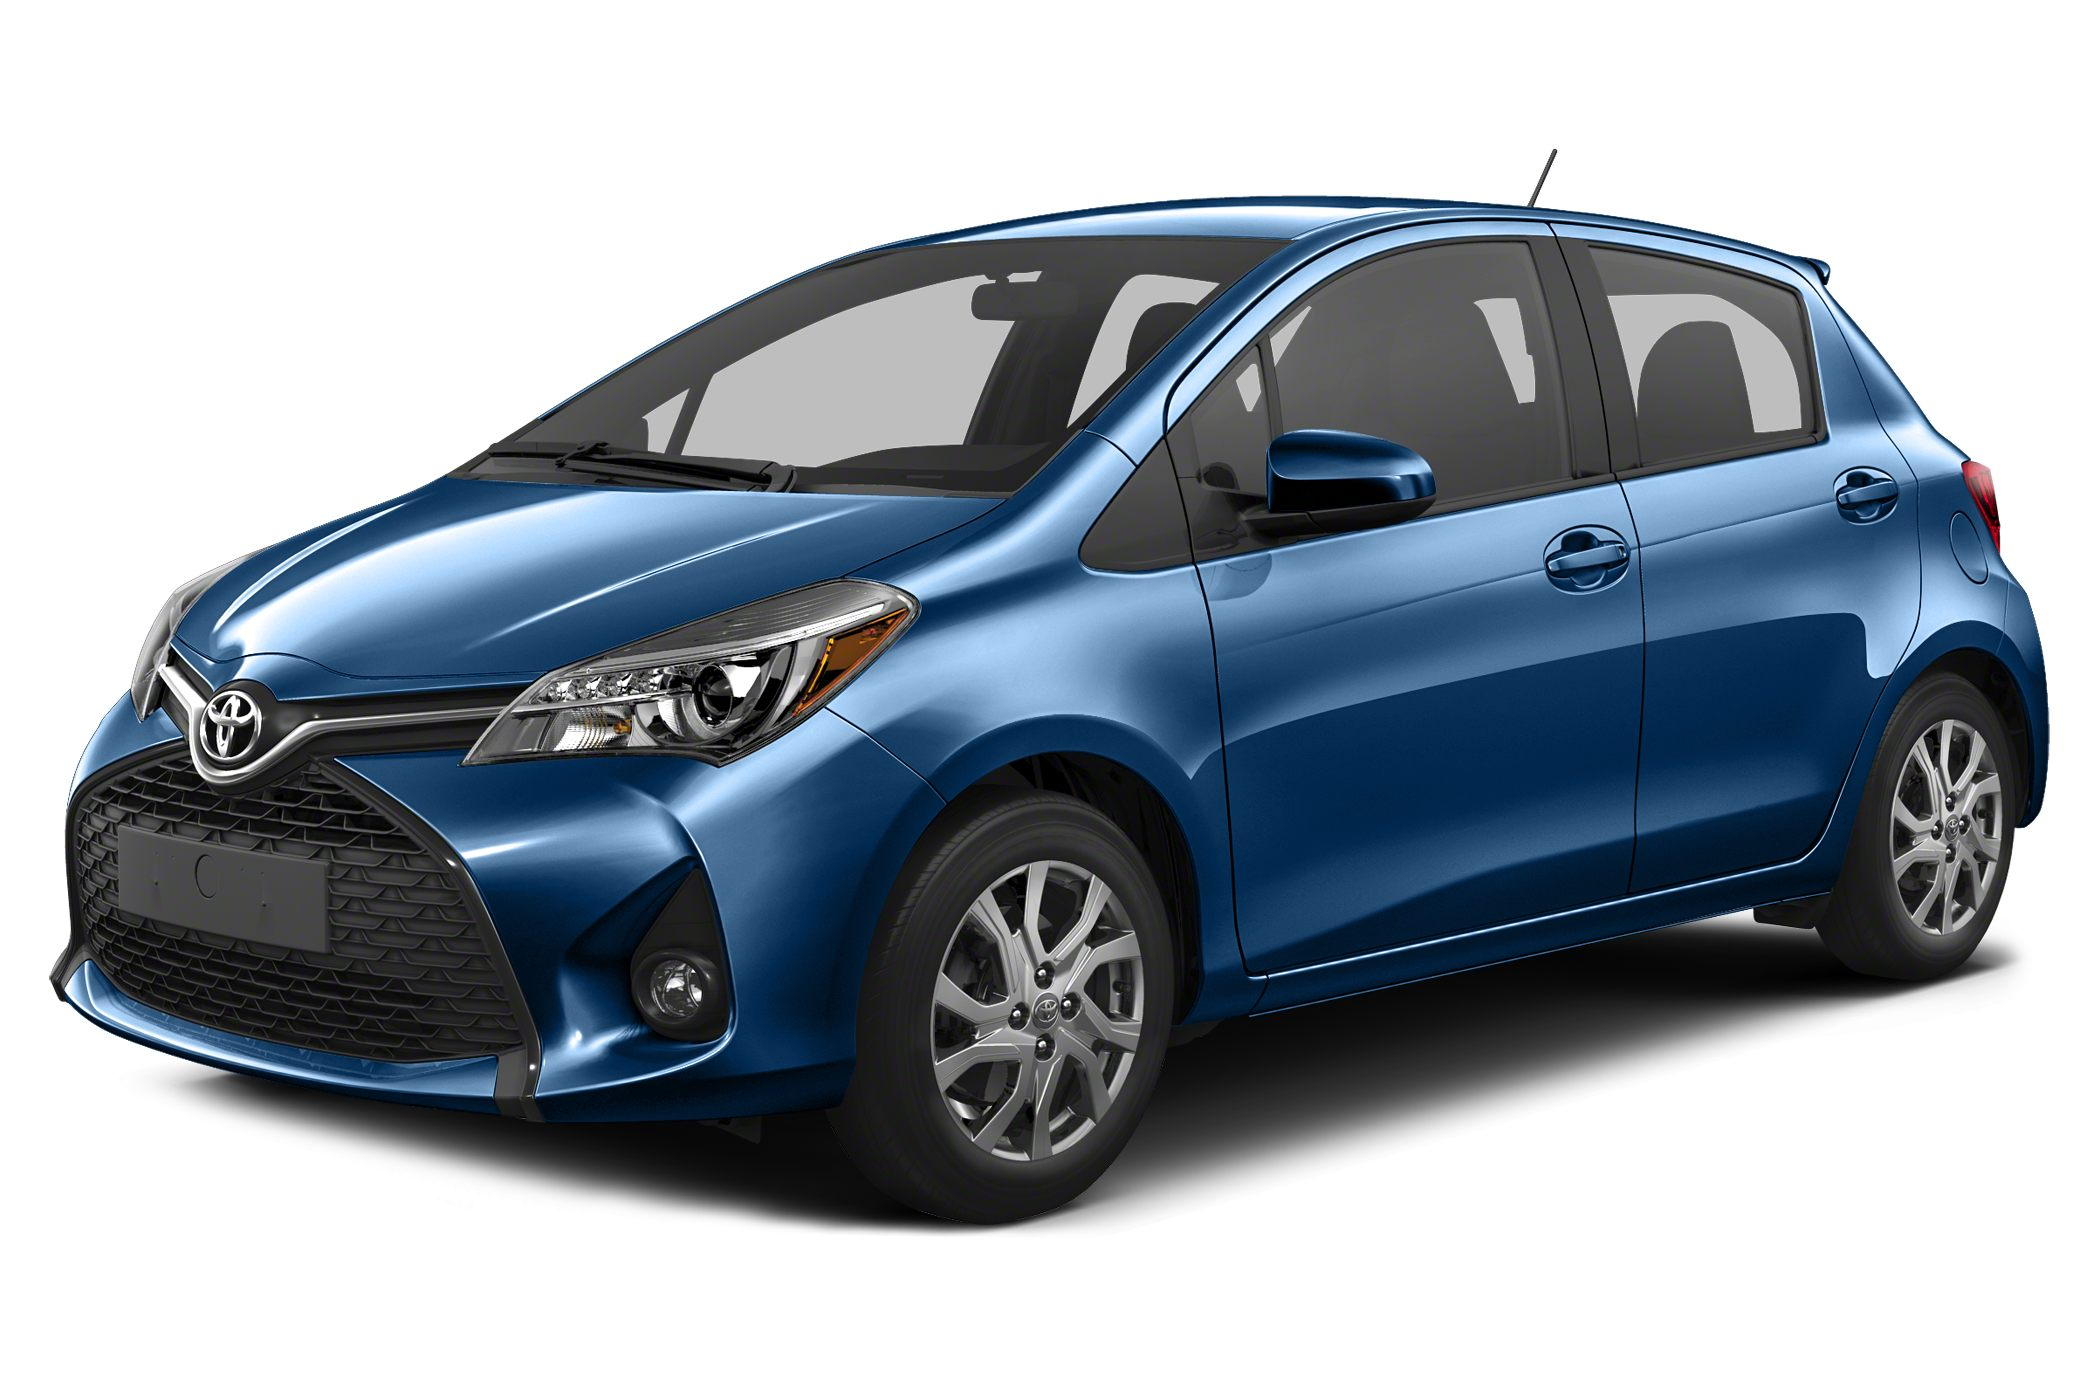 2015 Toyota Yaris SE Hatchback for sale in Hudson for $18,625 with 0 miles